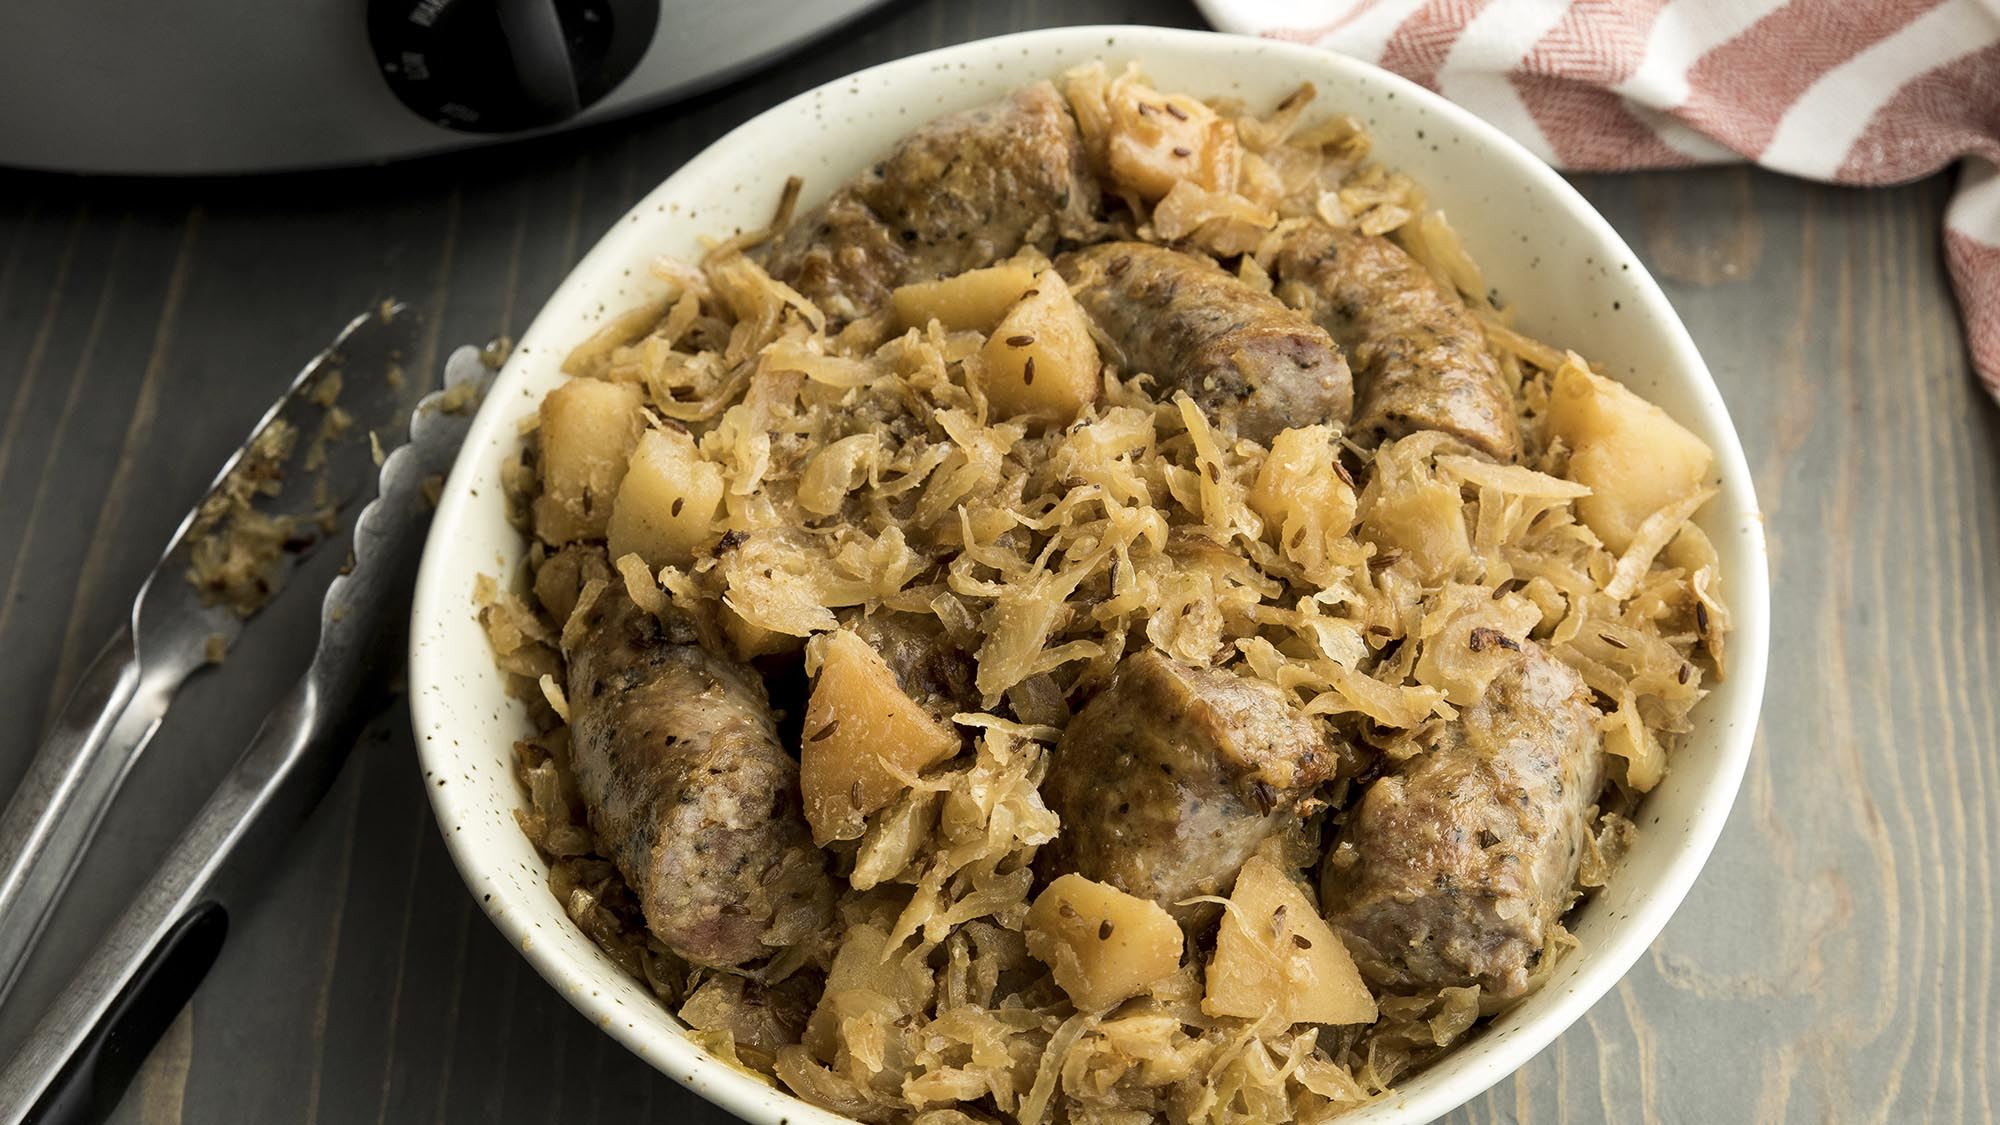 slow_cooker_sausage_and_sauerkraut_2000x1125.jpg